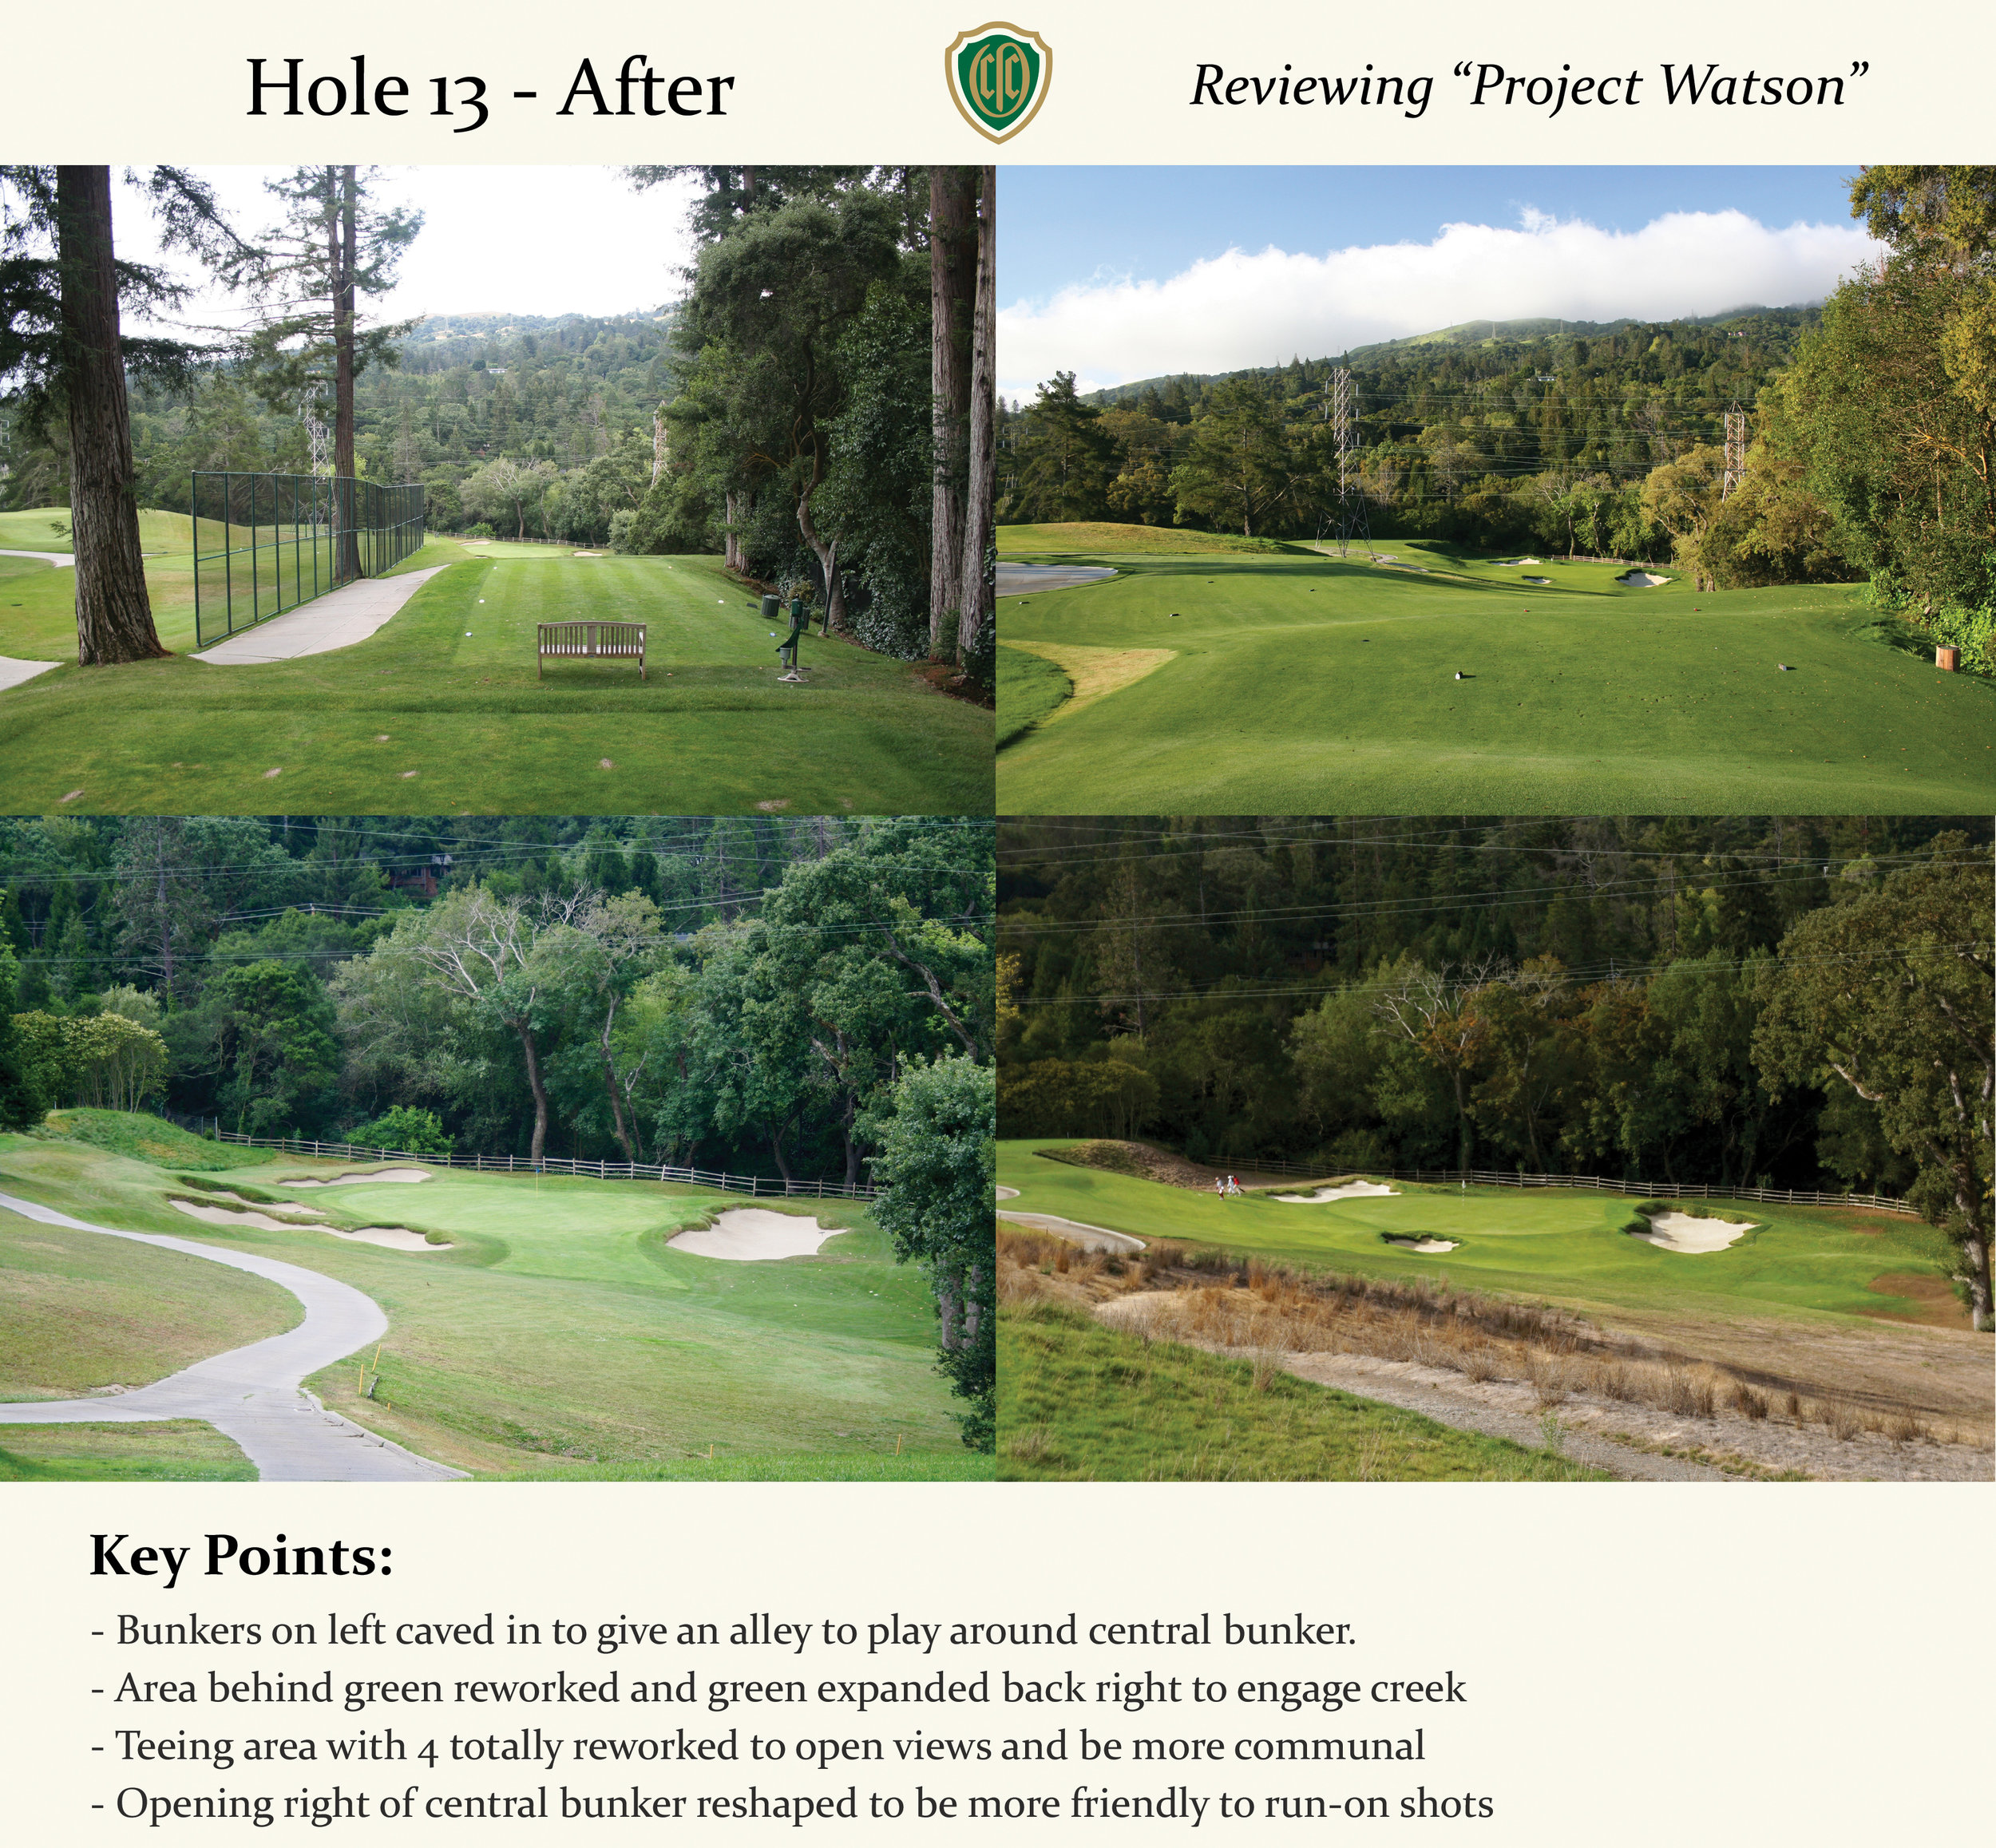 A lot of work also took place at the tees, as one can see in the two top images. Clutter in the form of trees, fences, retaining walls, and excess cart path was all removed as the tees from 13 and 4 were joined together in the same complex. Reshaping also added visibility to the green, which was mostly blind before from the back tees. This is fantastic work overall by Eckenrode and the contracting team at Earth Sculptures.